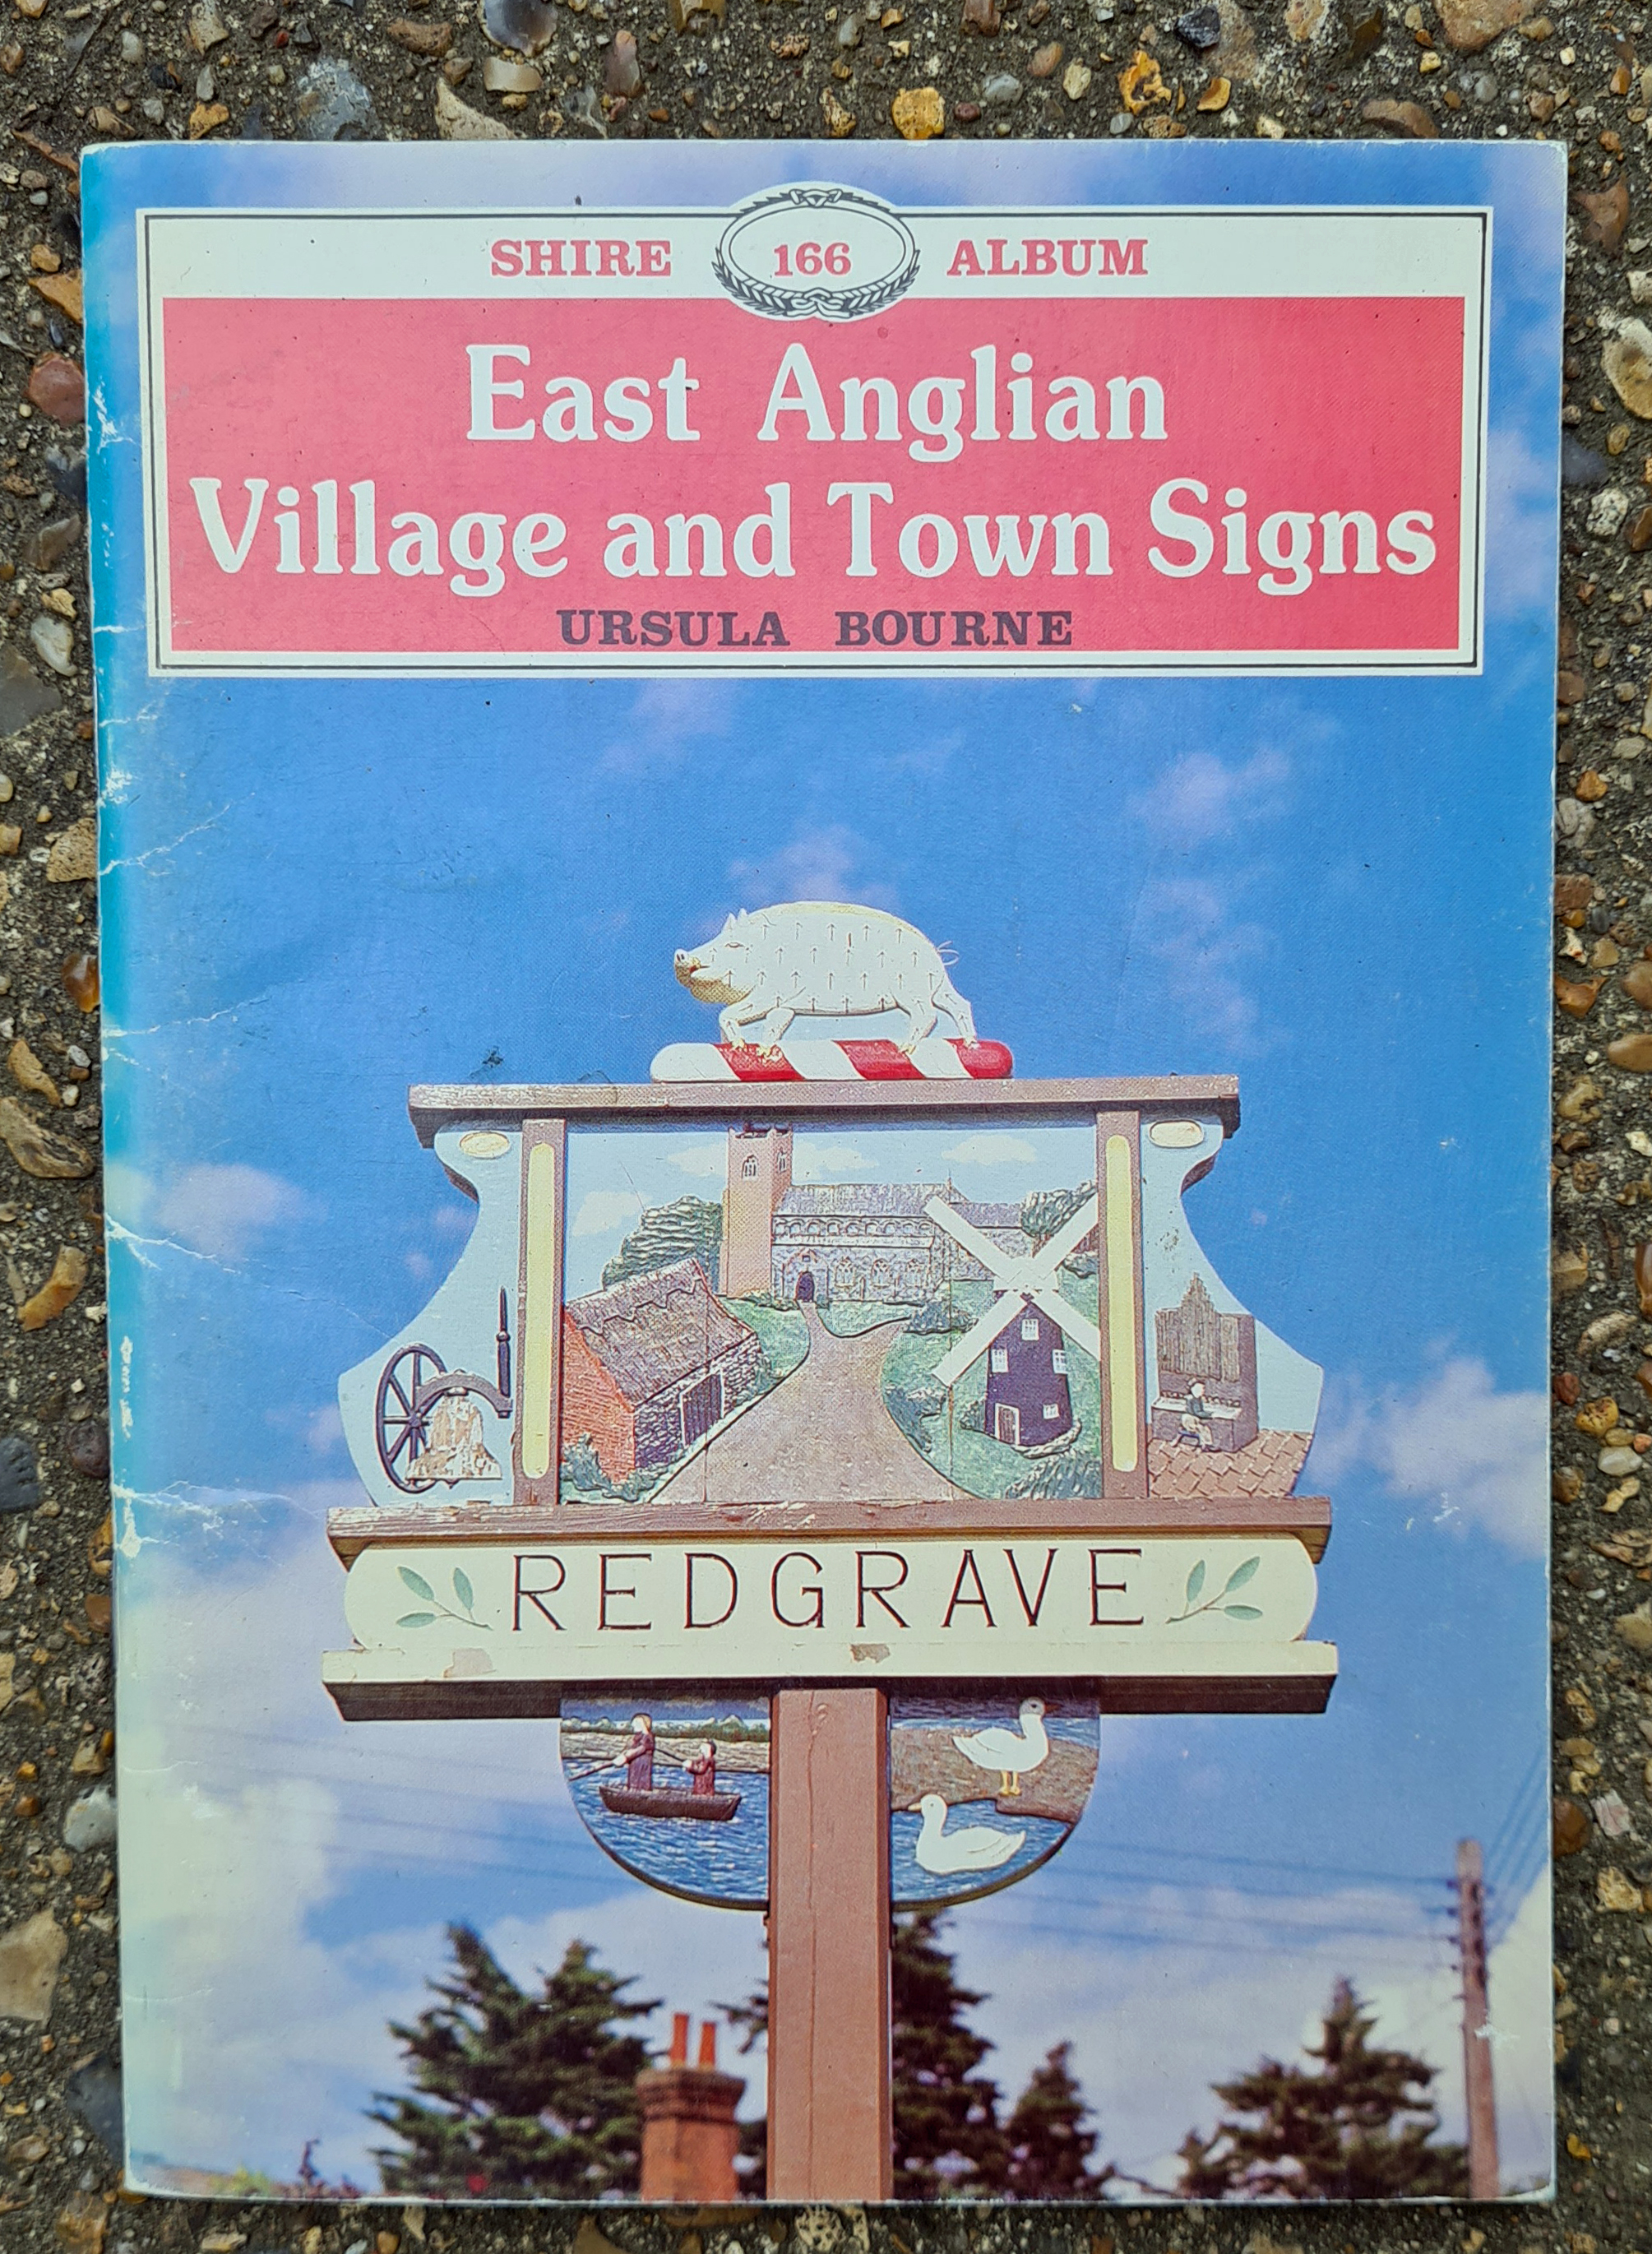 East Anglian Village and Town Signs, part of the Shire library